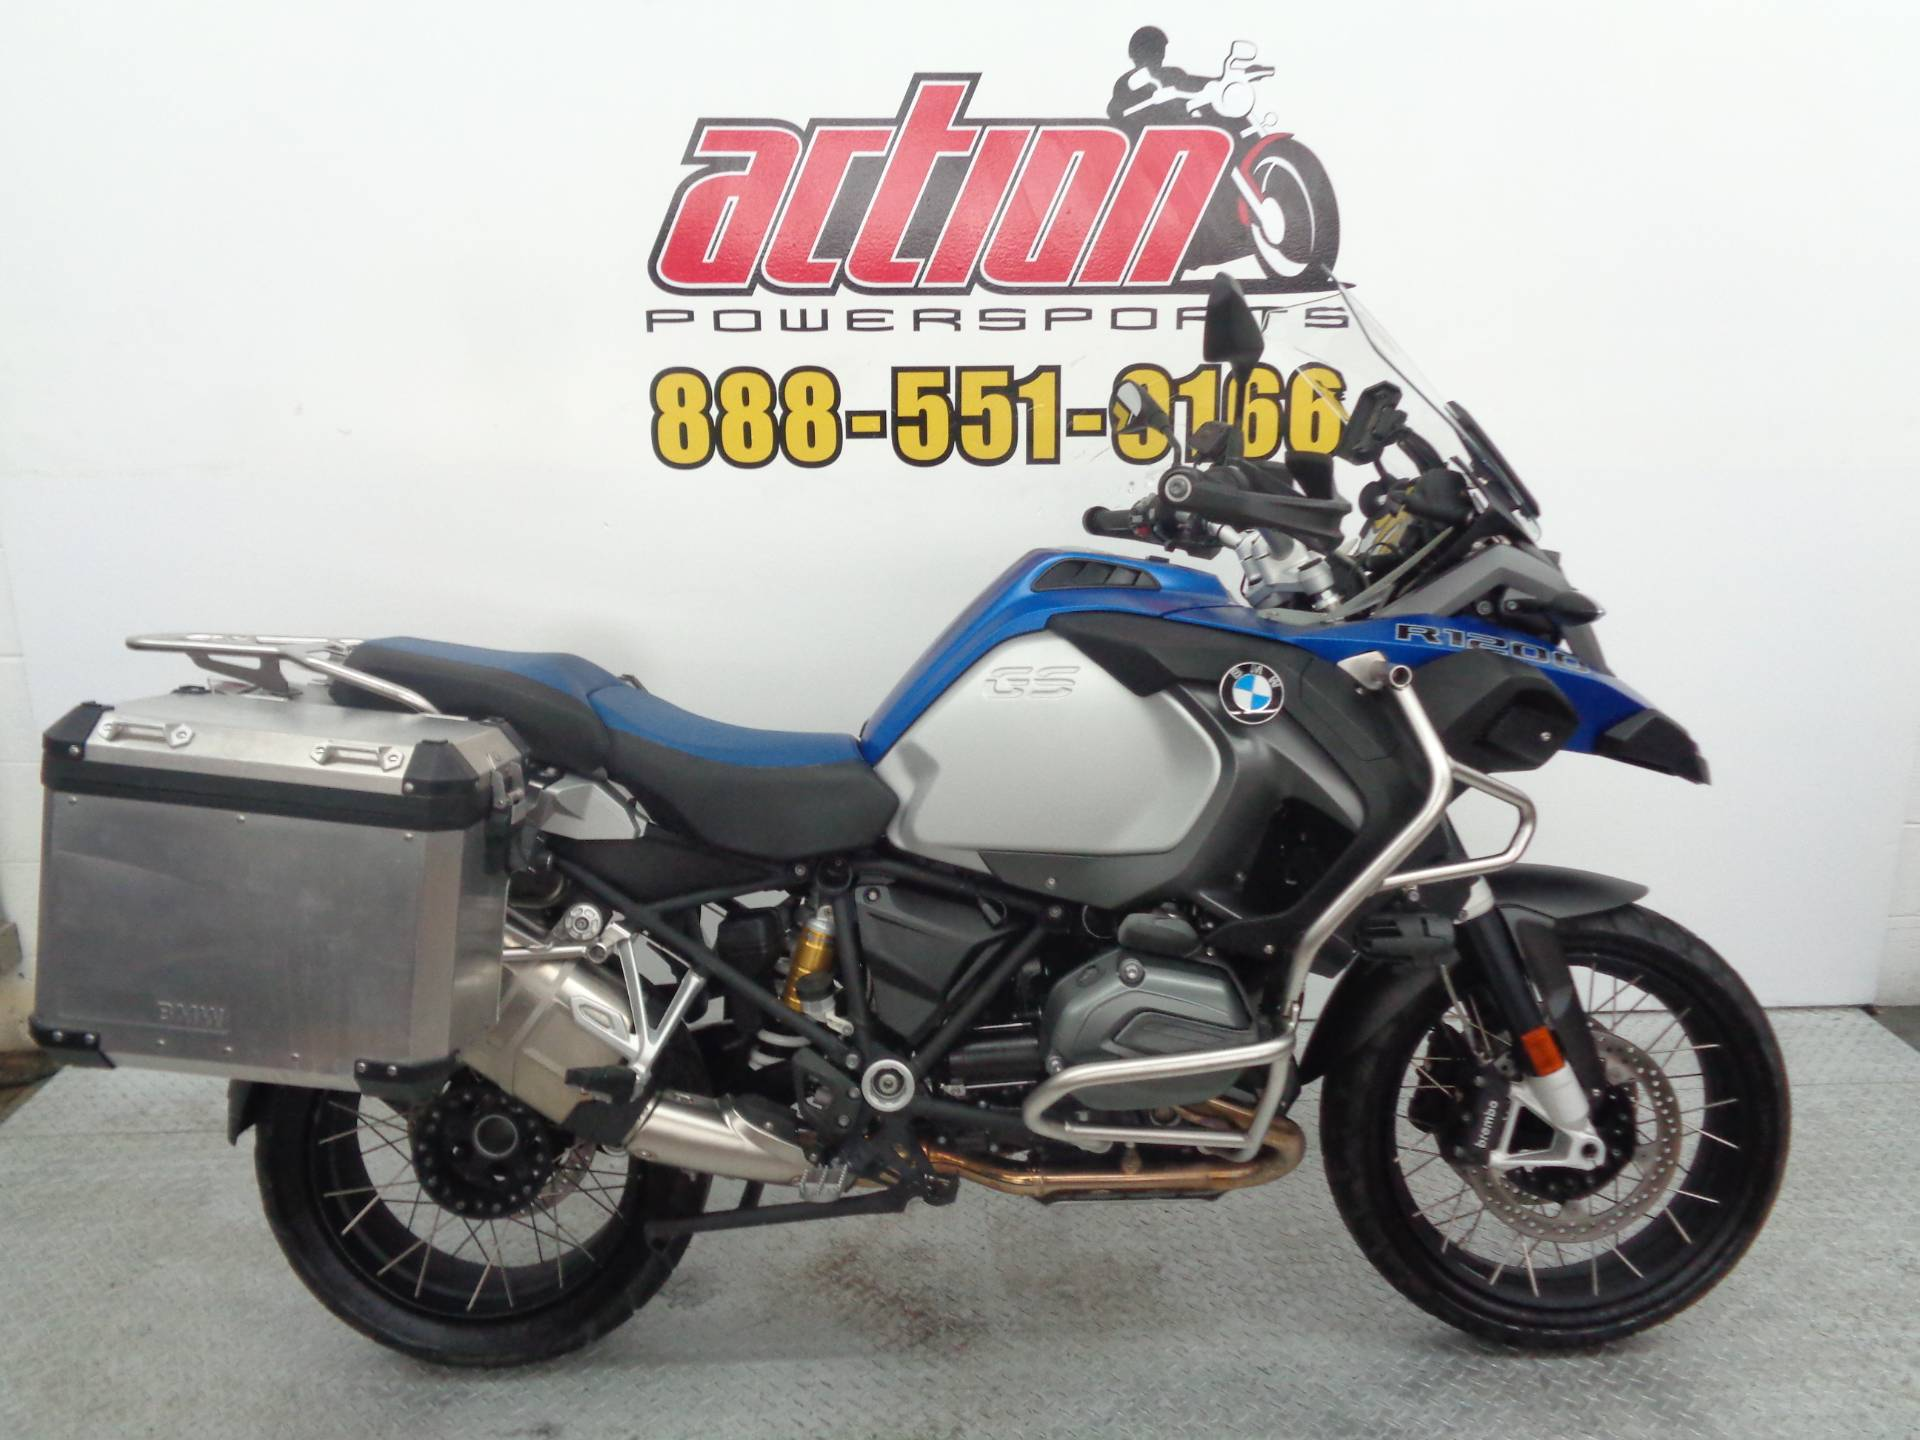 Used 2015 BMW R 1200 GS Adventure Motorcycles in Tulsa, OK | Stock ...